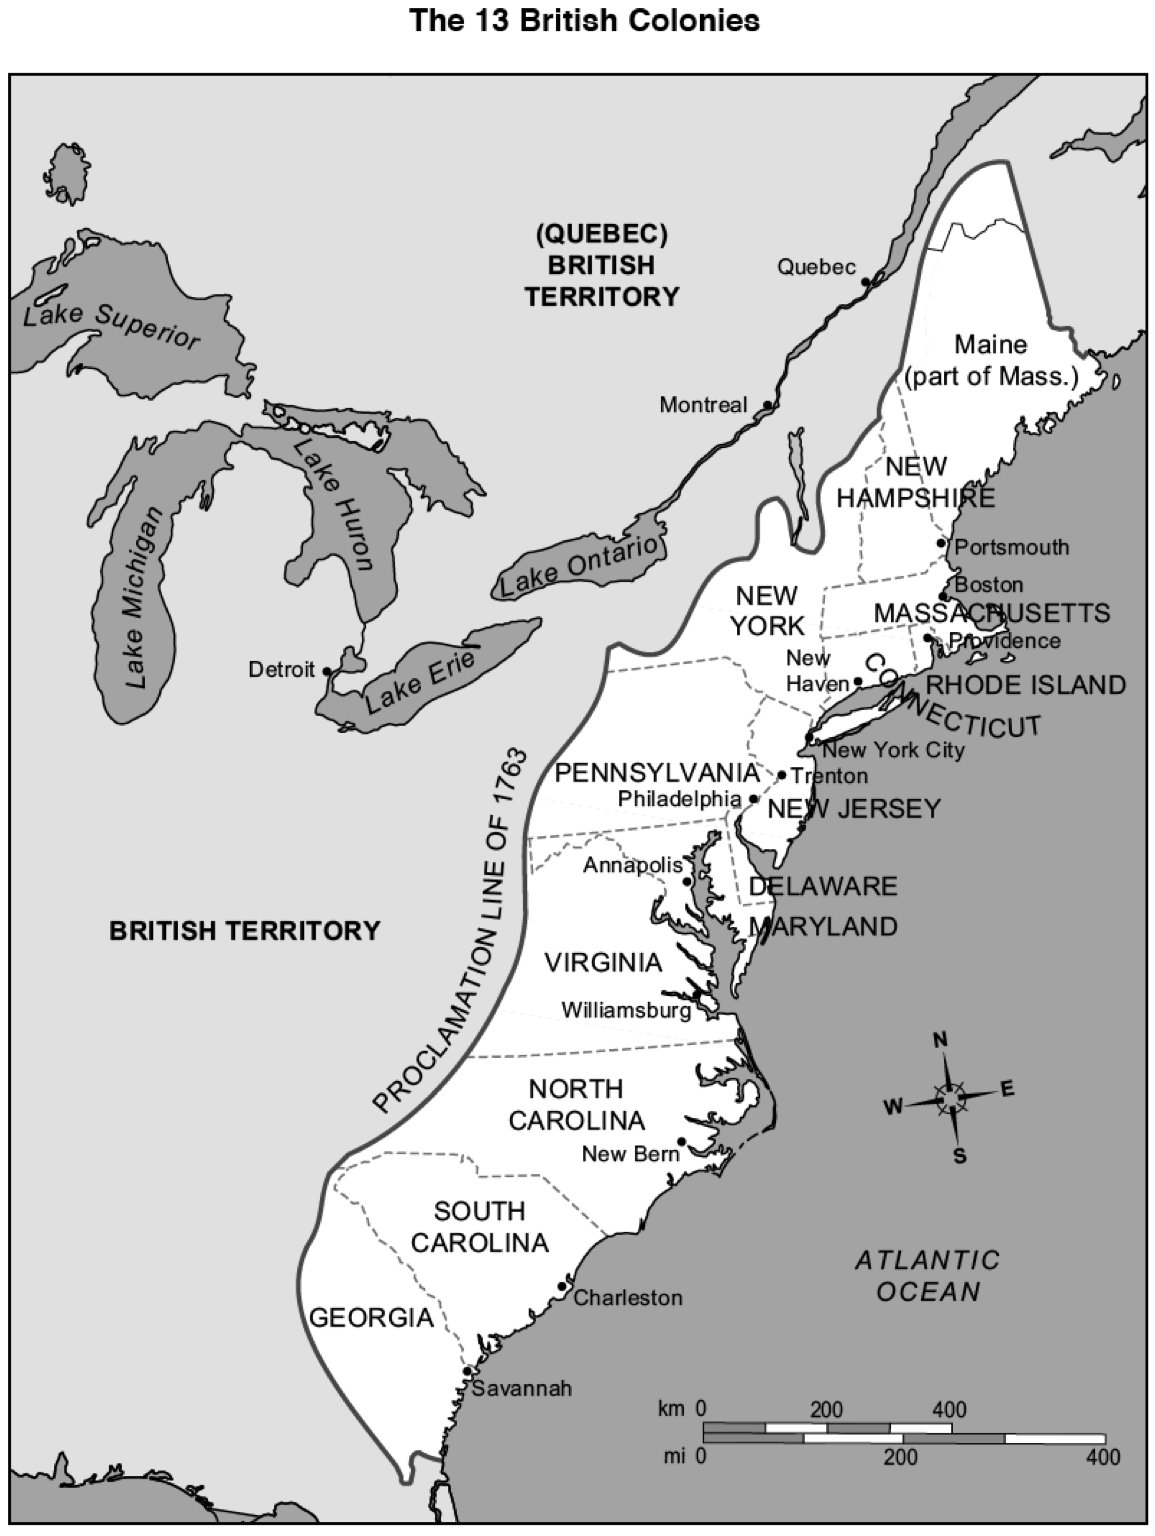 13 colonies map - Google Search | 13 colonies map, 13 ...Black And White Delaware Colony Map